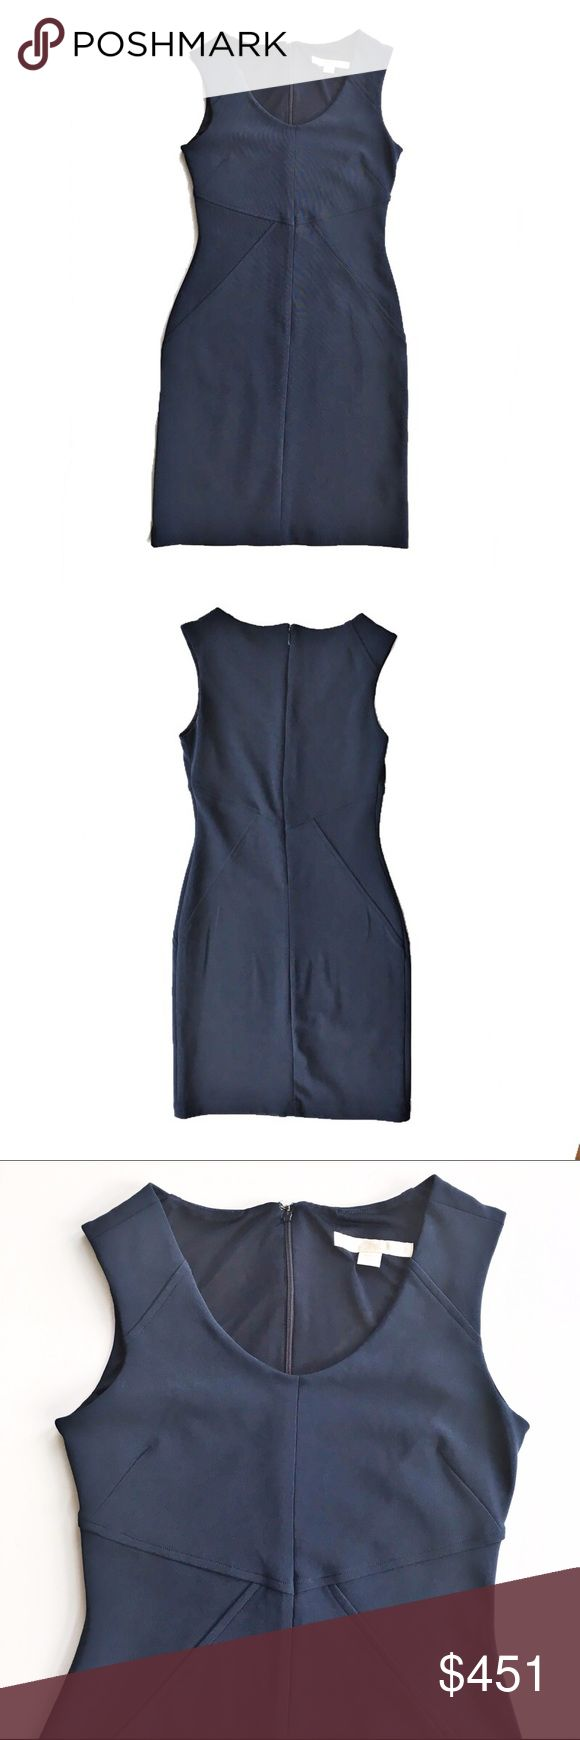 Boston Proper navy body con dress Gorgeous figure hugging body con dress in navy blue, size 4 from Boston Proper. Like new condition. Boston Proper Dresses Mini